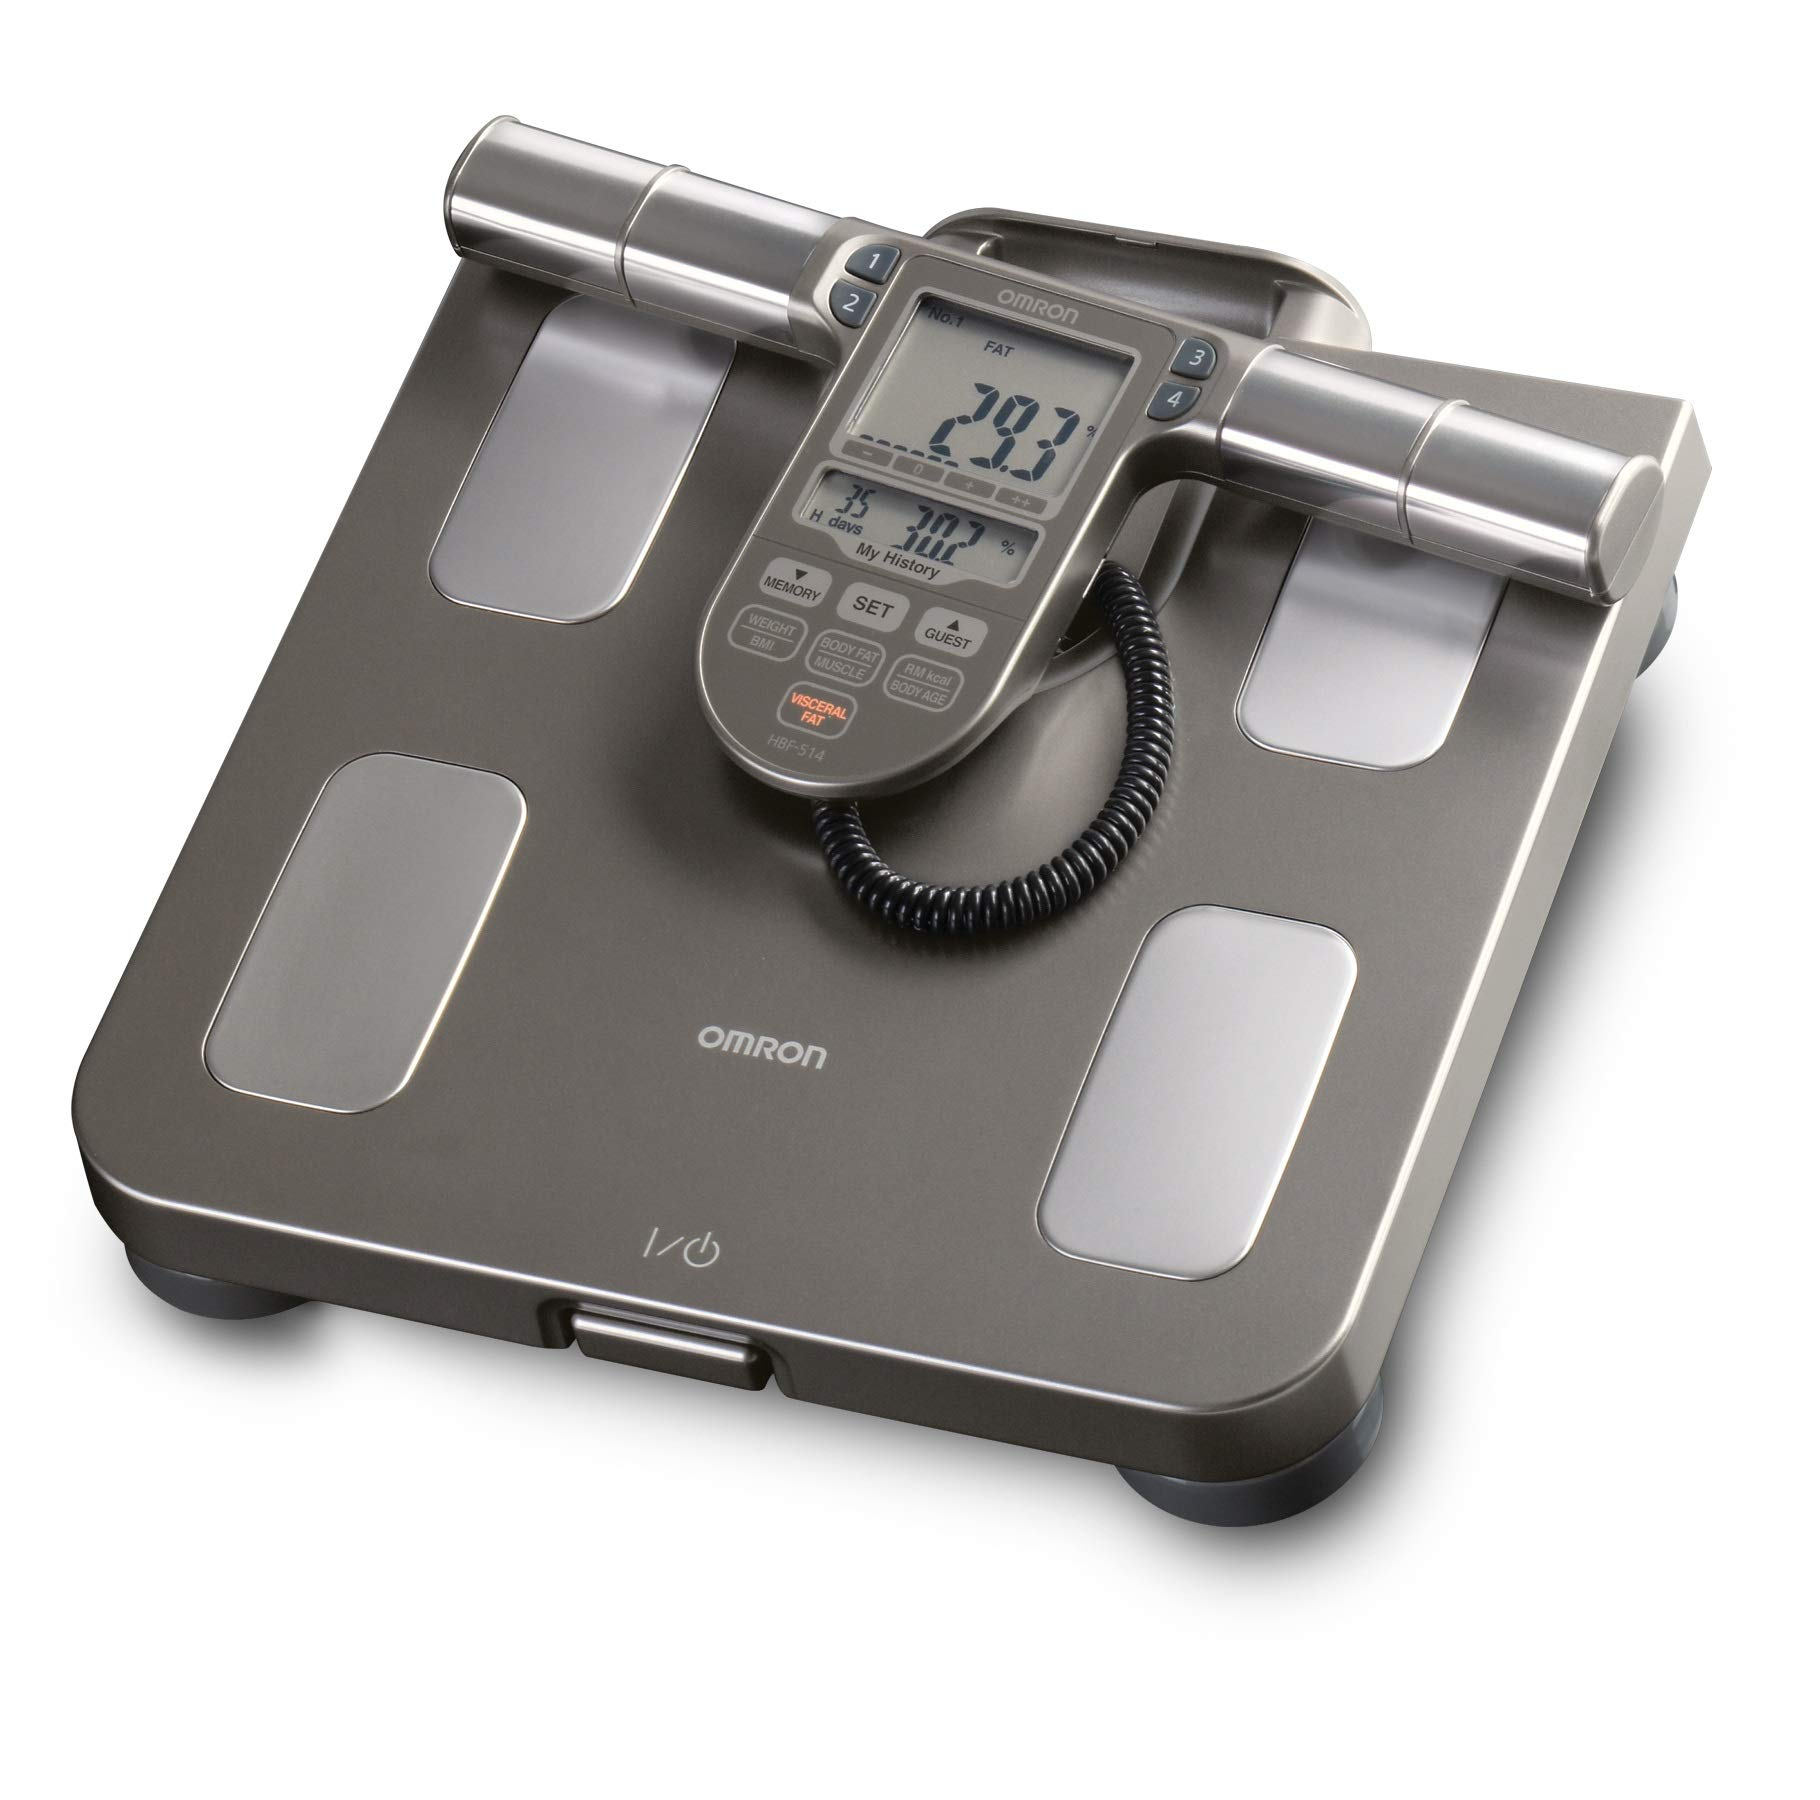 Omron Body Composition Monitor with Scale - 7 Fitness Indicators & 90-Day Memory by Omron